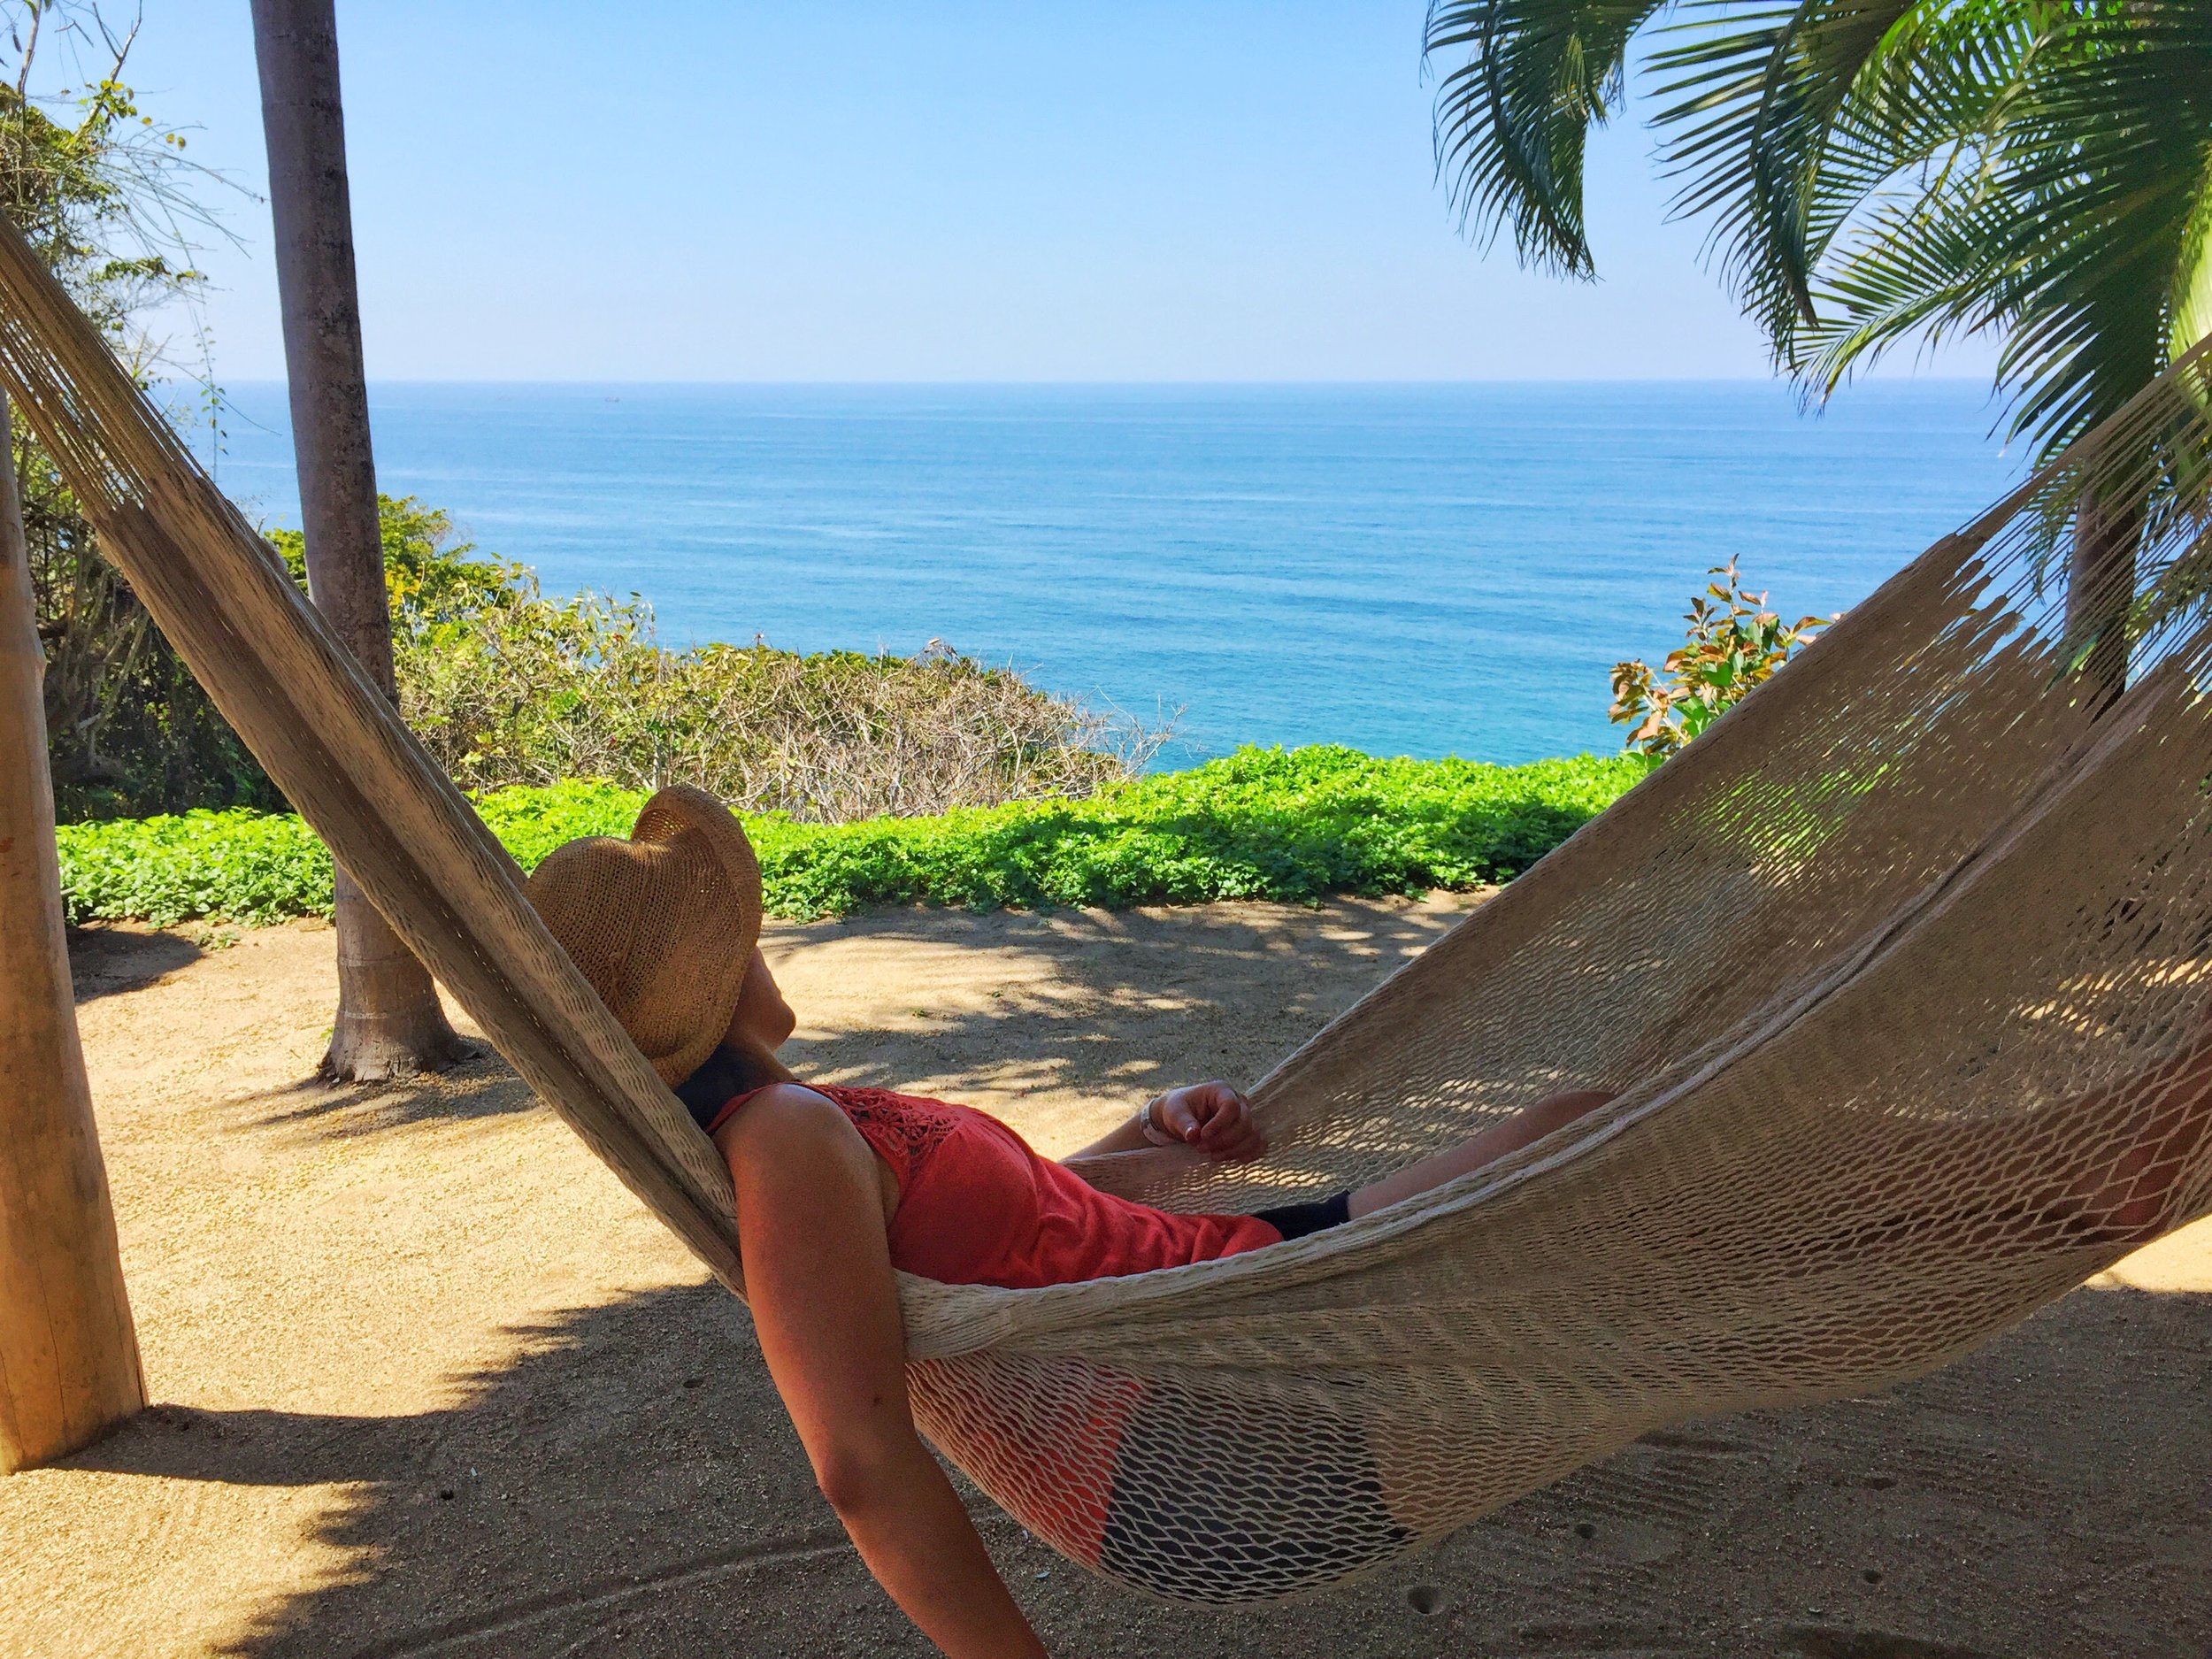 """""""THIS IS THE FIRST VACATION I HAVE BEEN ON WHERE I WAS COMPLETELY ABLE TO DISCONNECT."""" - DEBBIE G."""